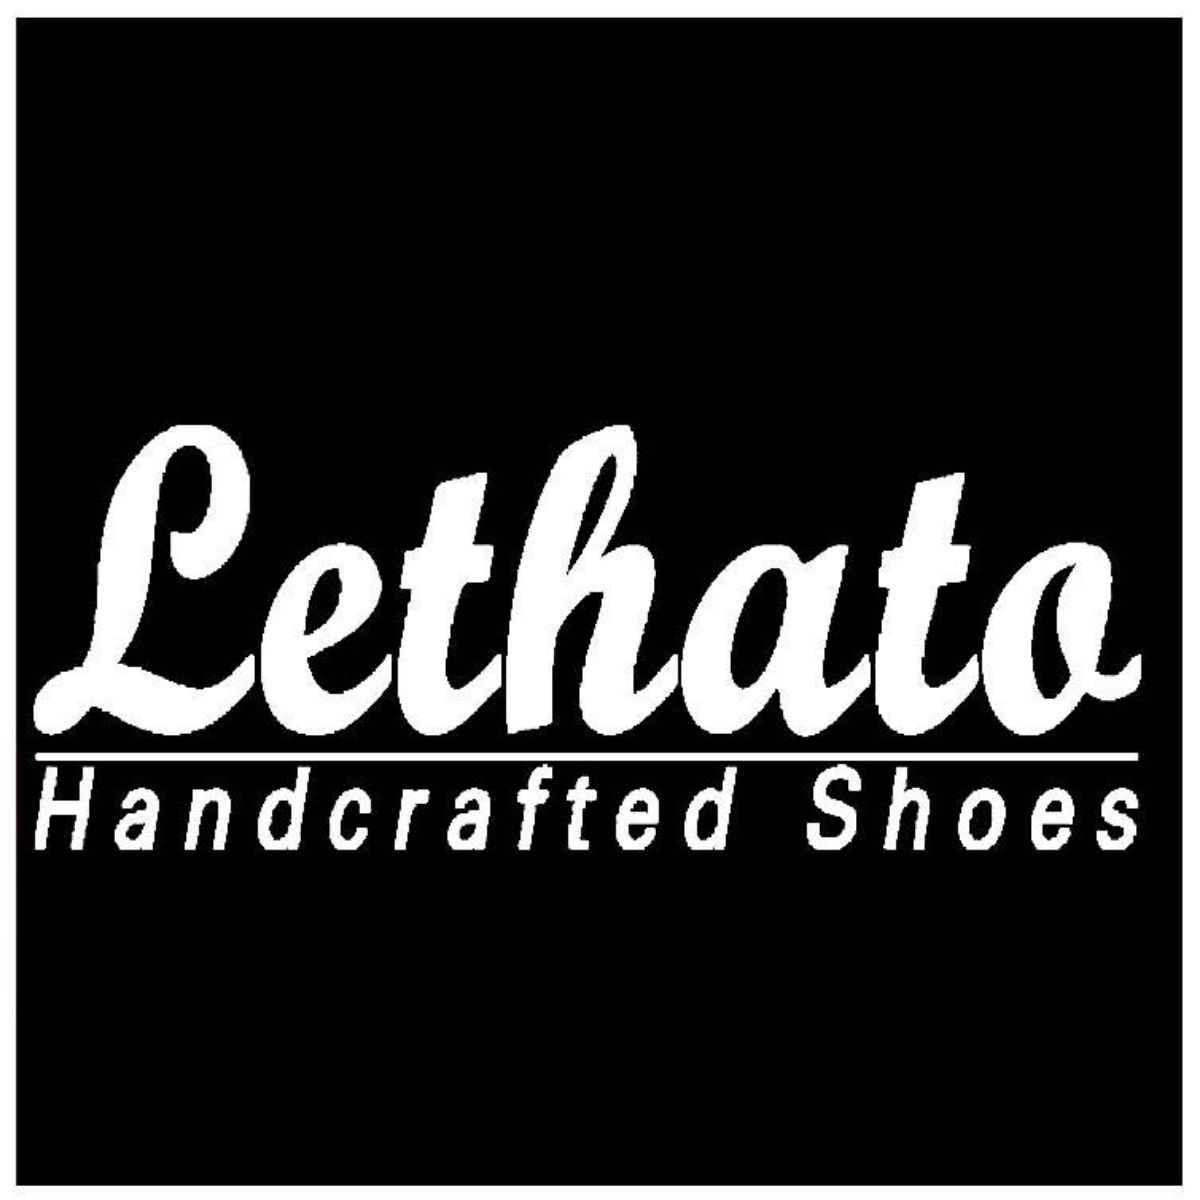 Business logo of Lethato